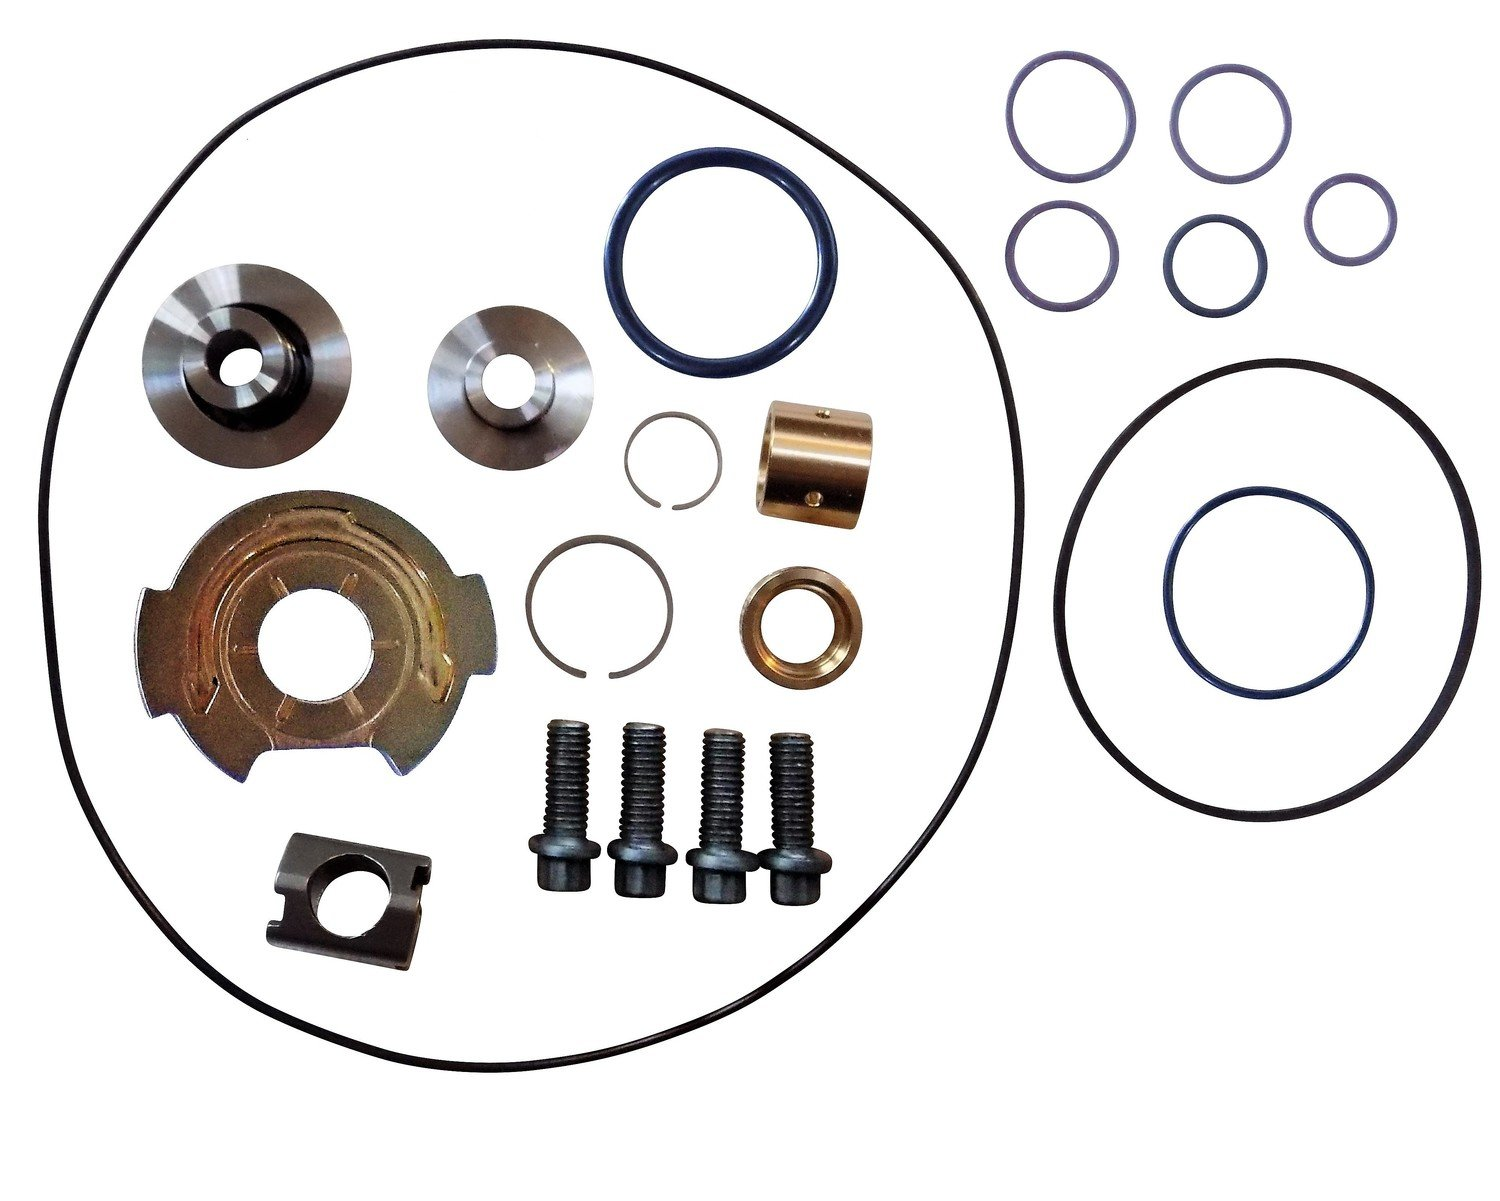 lbz duramax engine rebuild kit